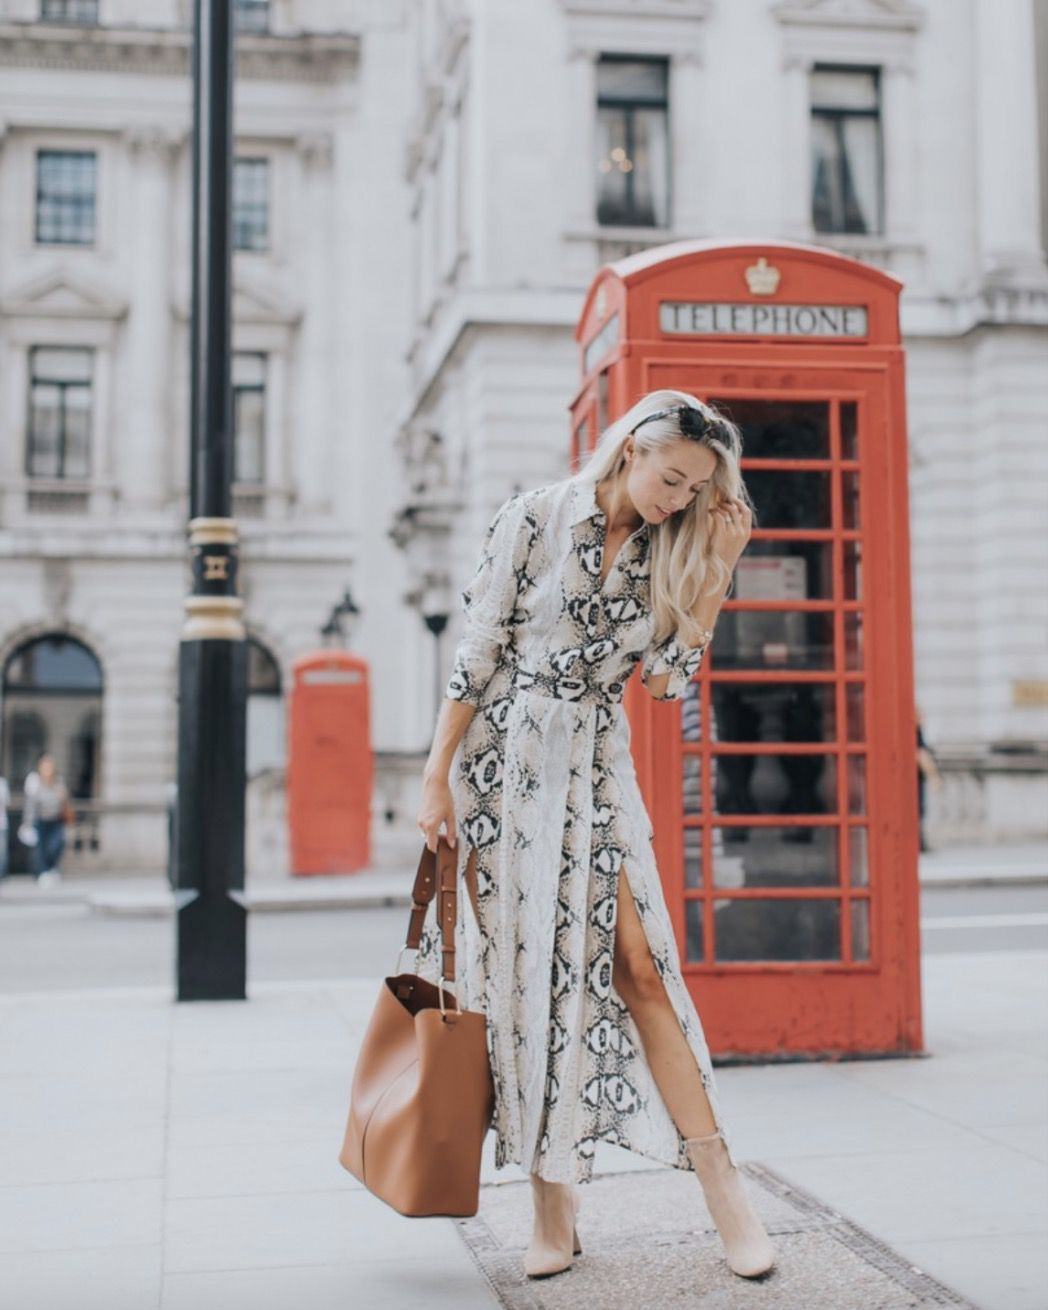 1bad9e1ebee3e2 21+ Fall Outfits To Copy This Season  Snake print dress with nude booties  and tan bag. The best fall fashion to get you inspired.